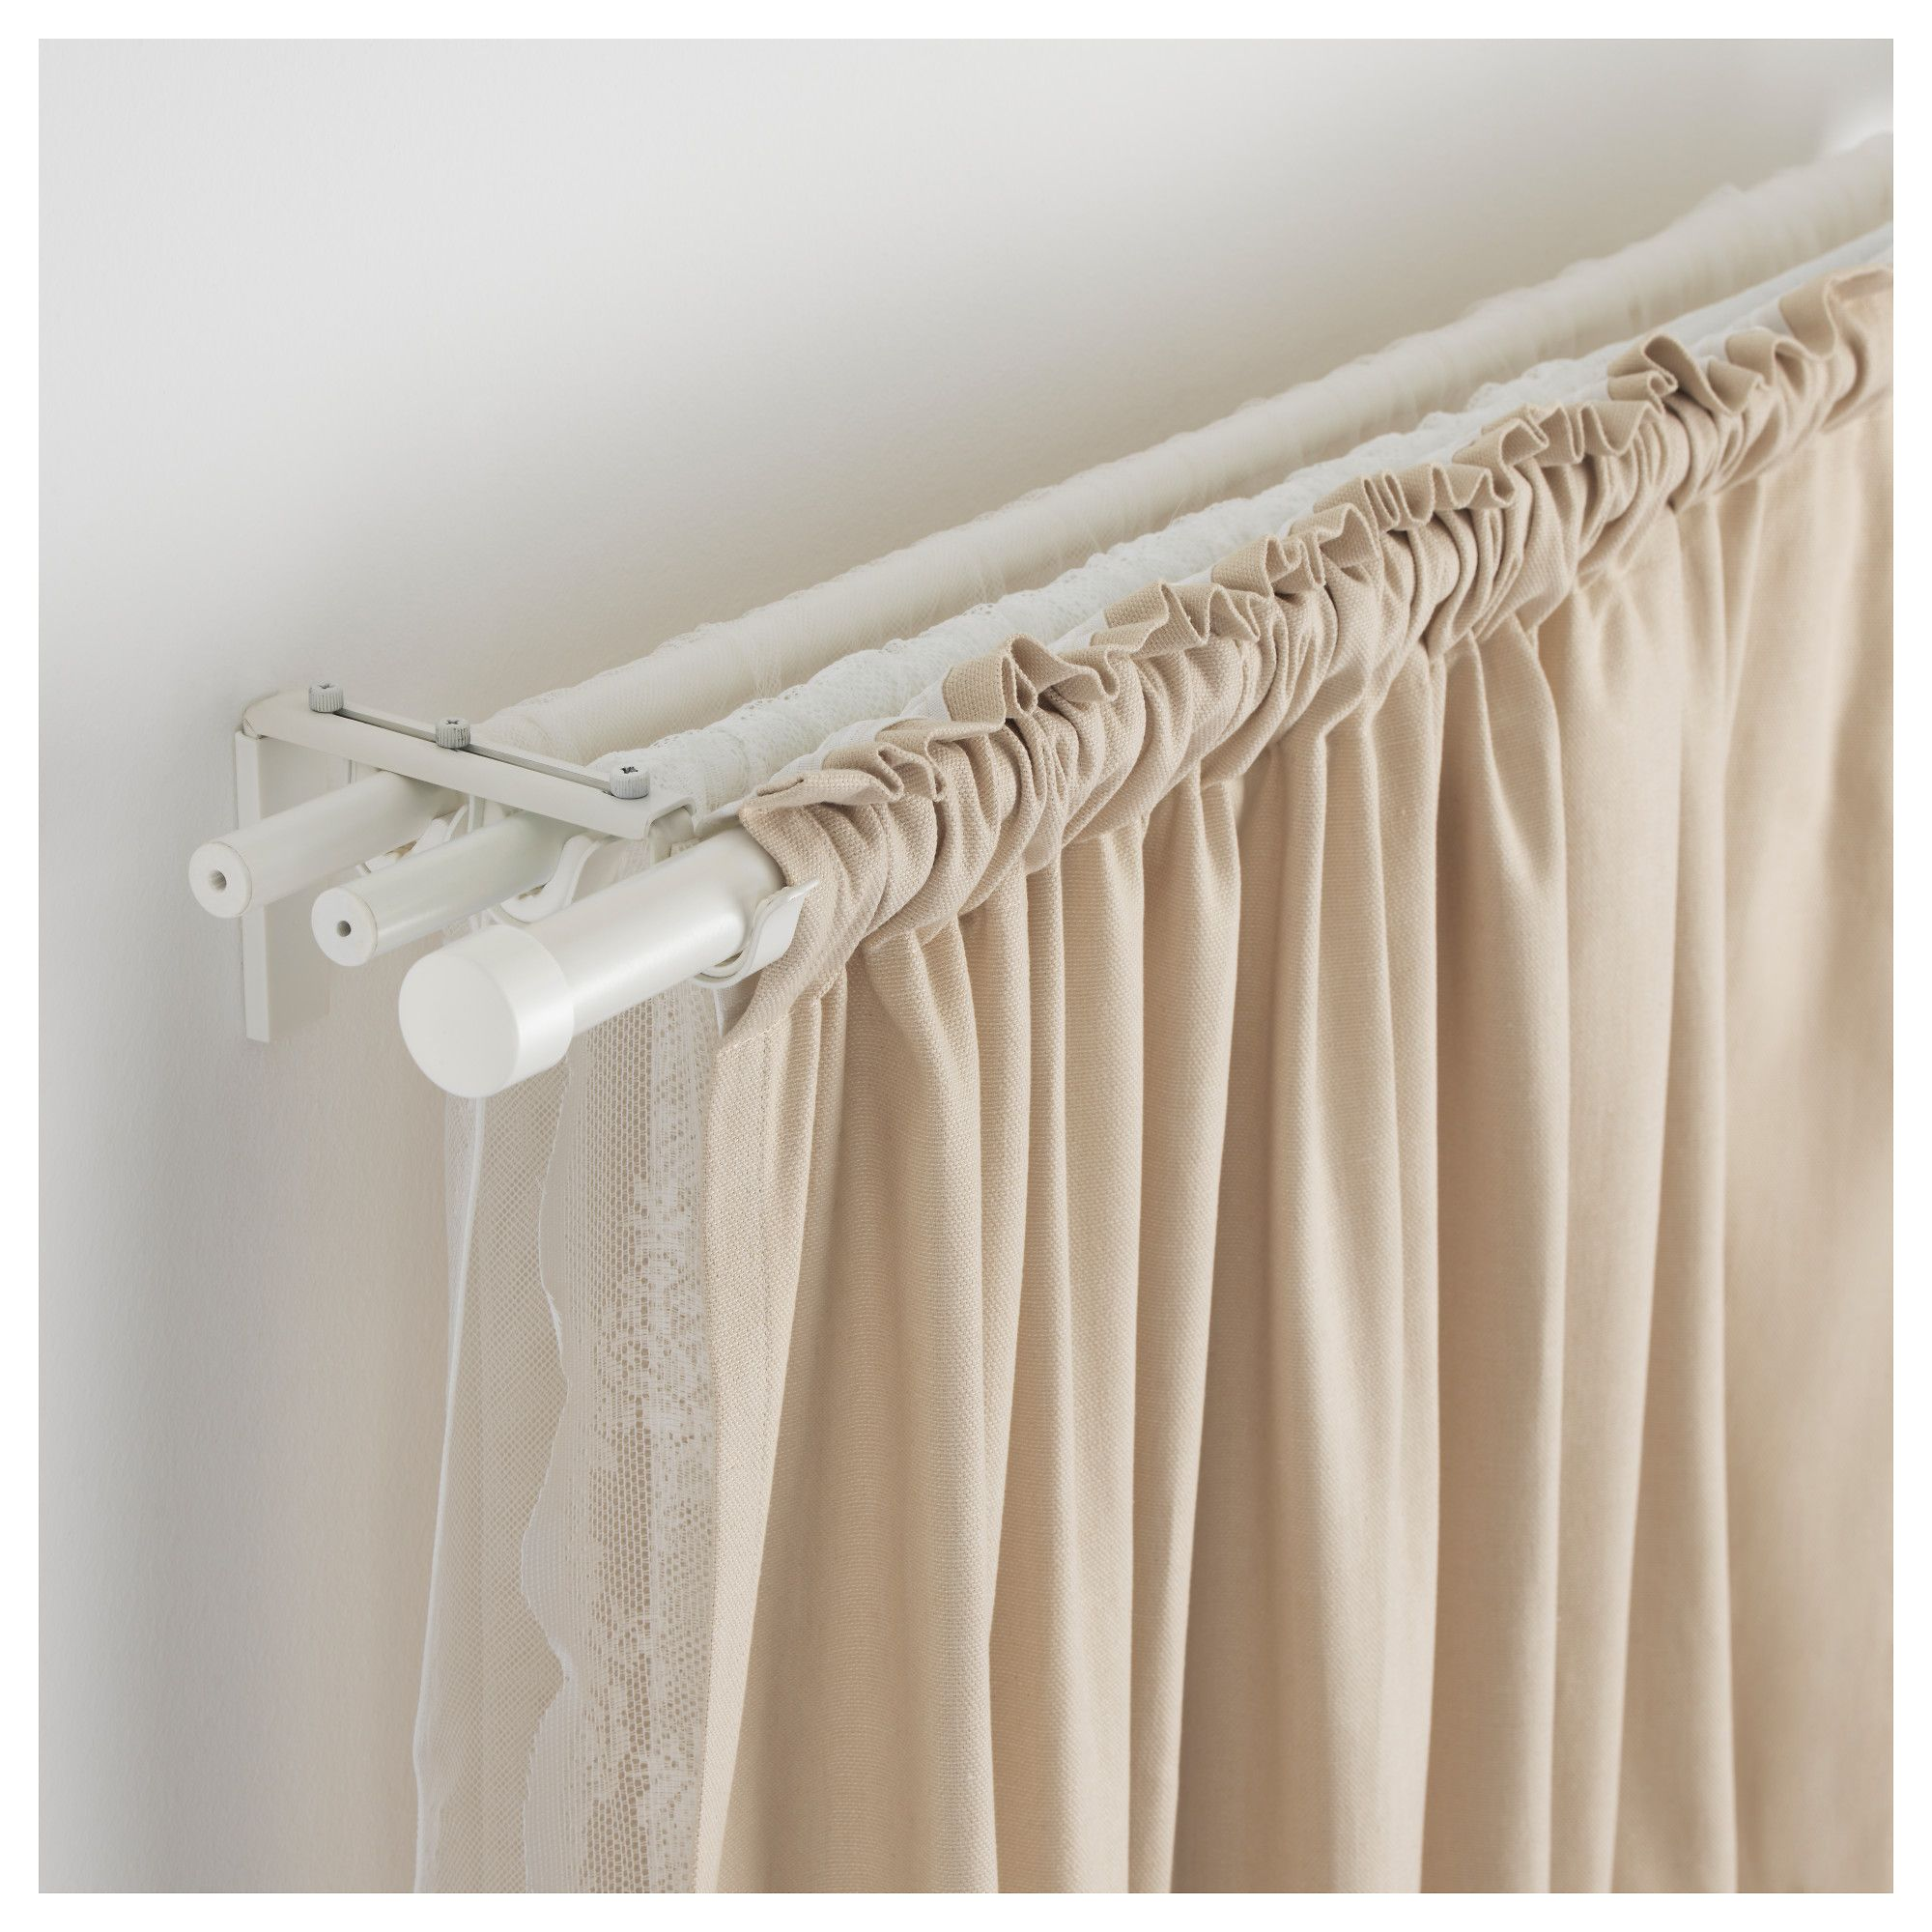 r cka curtain rod white products pinterest rideaux tringle rideau et tringle. Black Bedroom Furniture Sets. Home Design Ideas